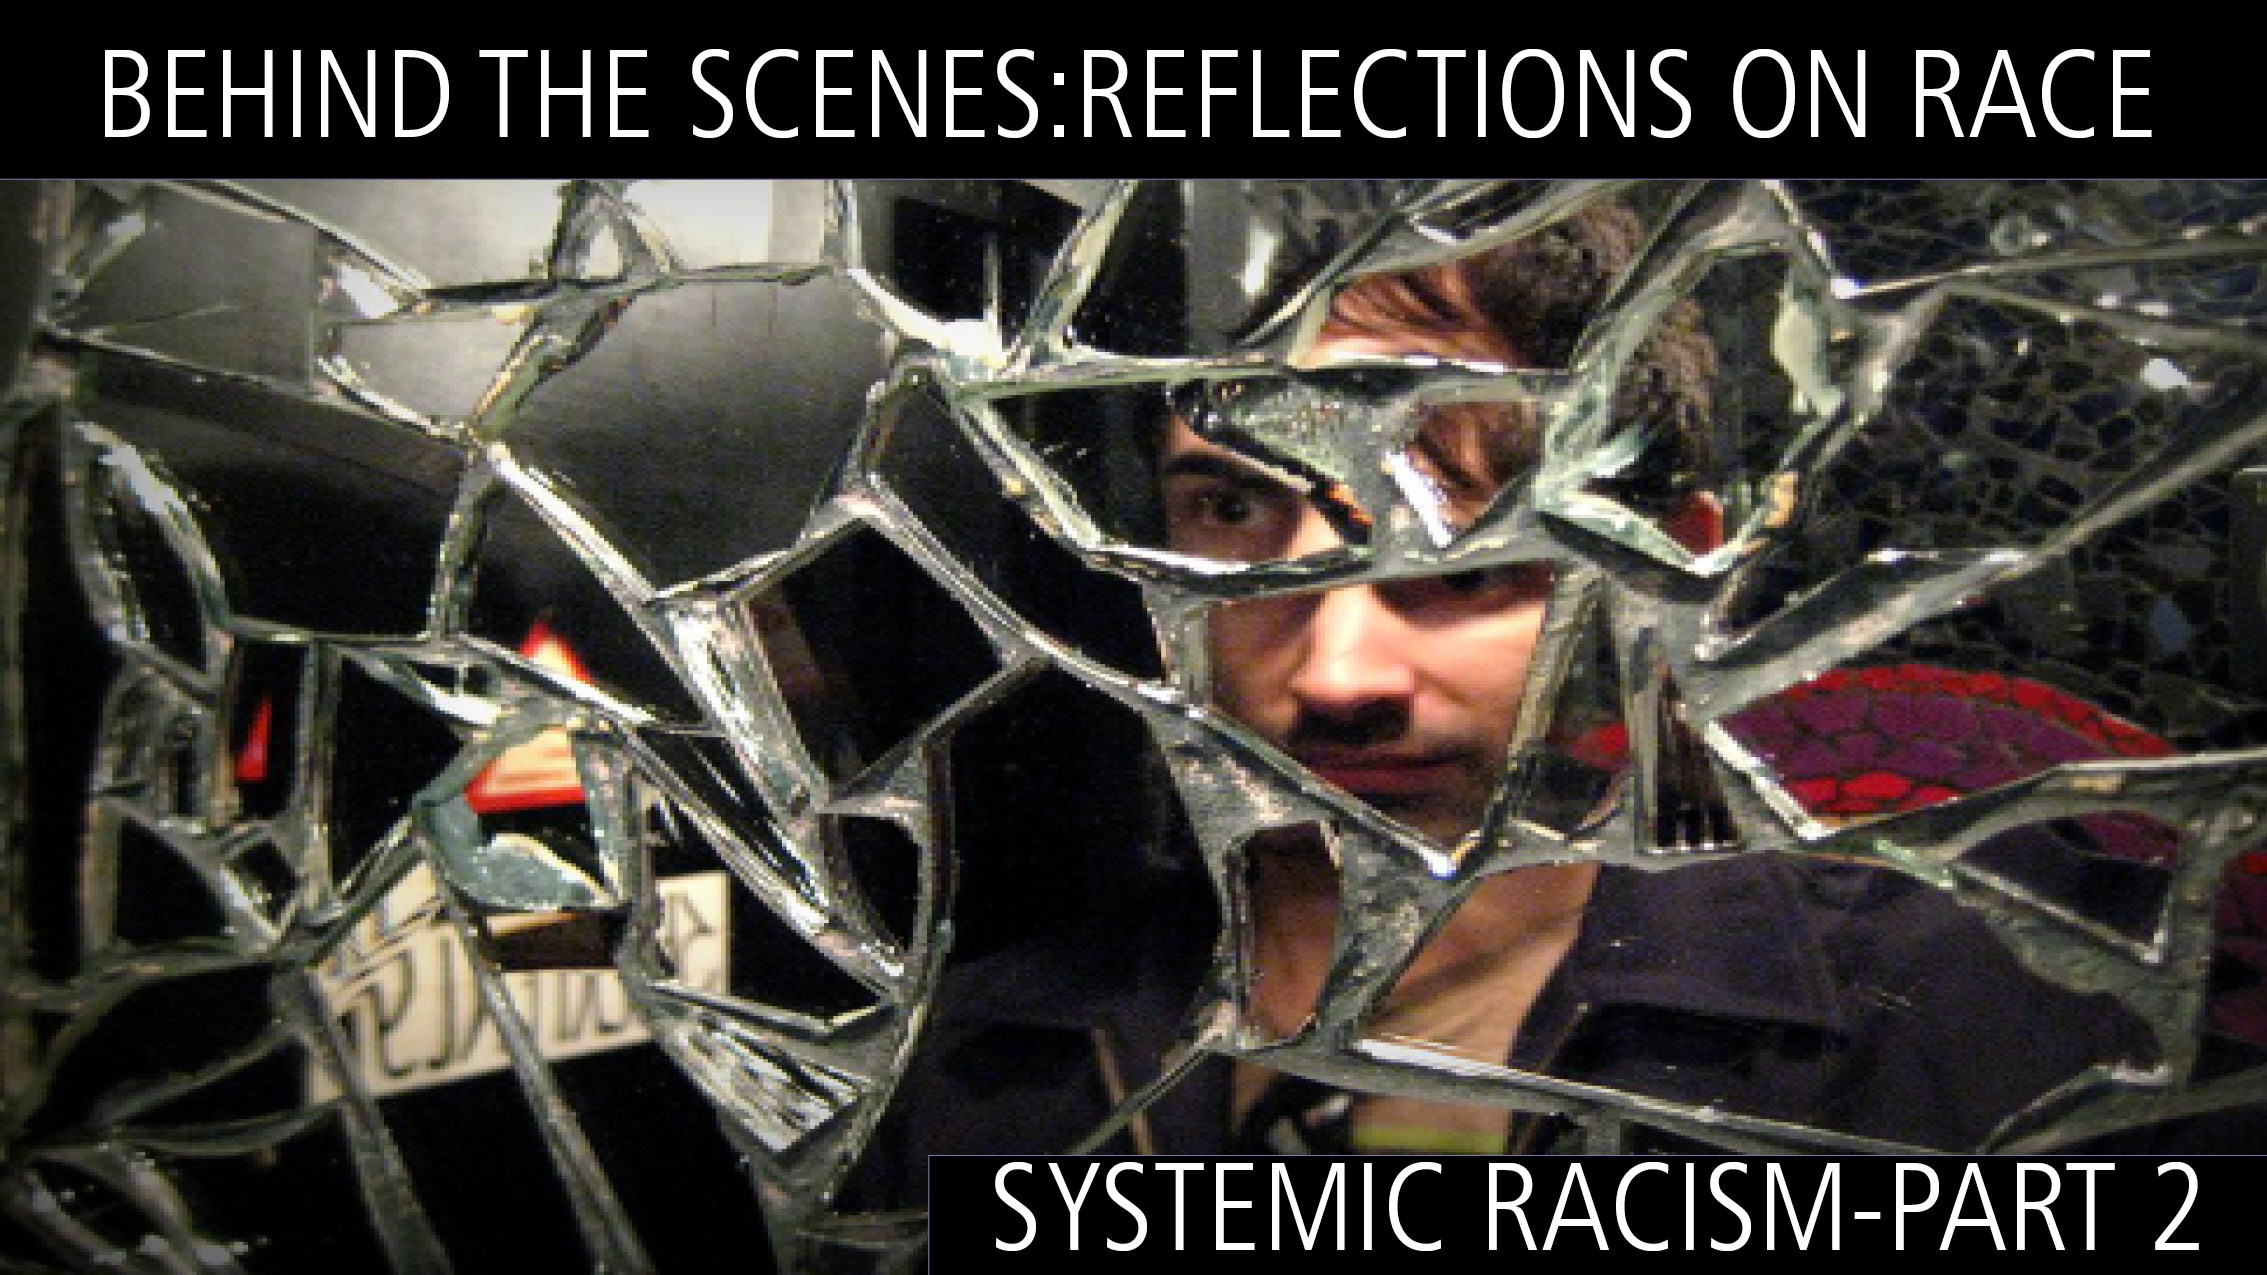 Reflections on Race: Systemic Racism- Part 2